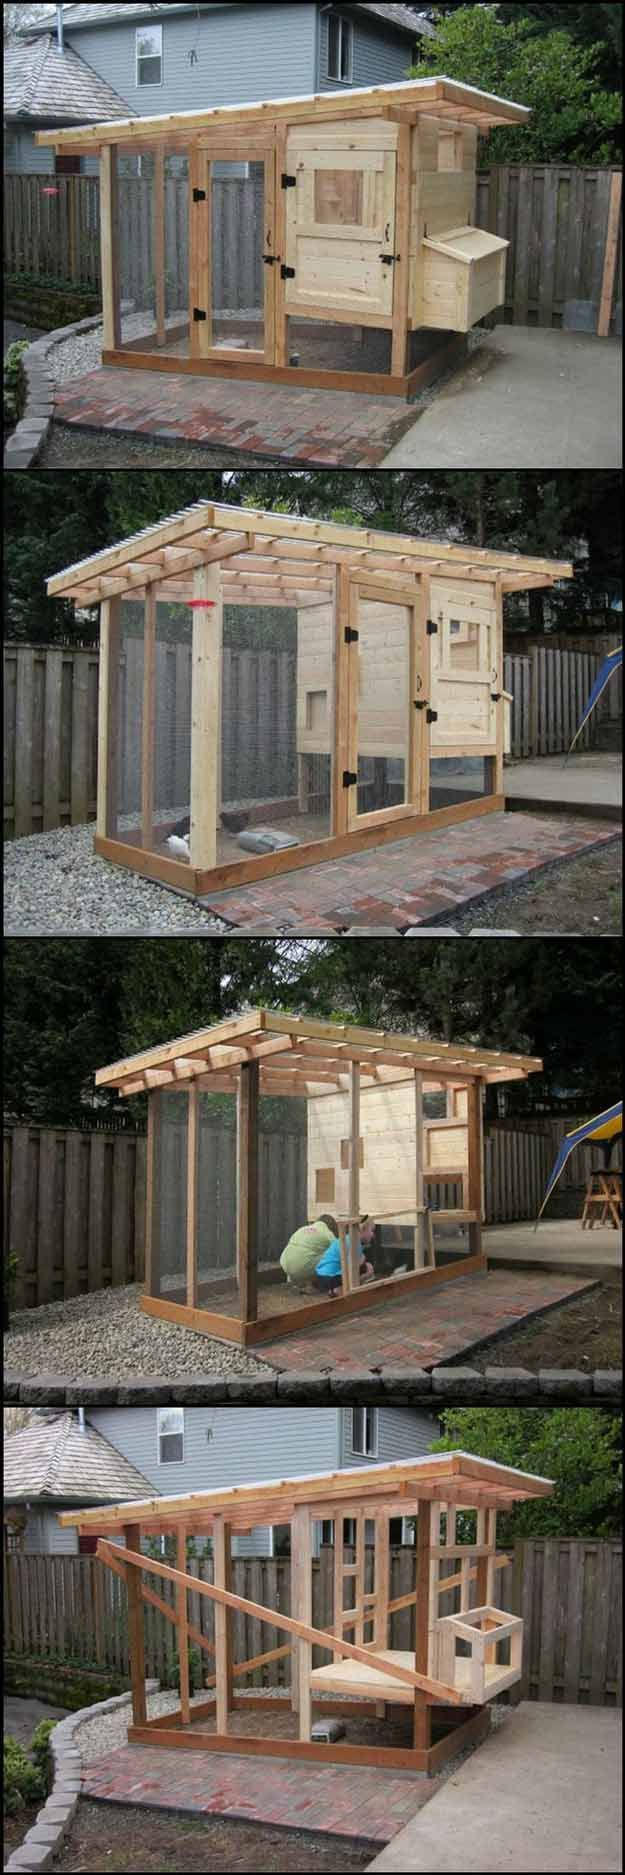 Easy Homemade Chicken Coop | 15 More Awesome Chicken Coop Ideas and Designs | Cheap and Easy DIY Projects For Your Homestead by Pioneer Settler at http://pioneersettler.com/15-awesome-chicken-coop-ideas-designs/